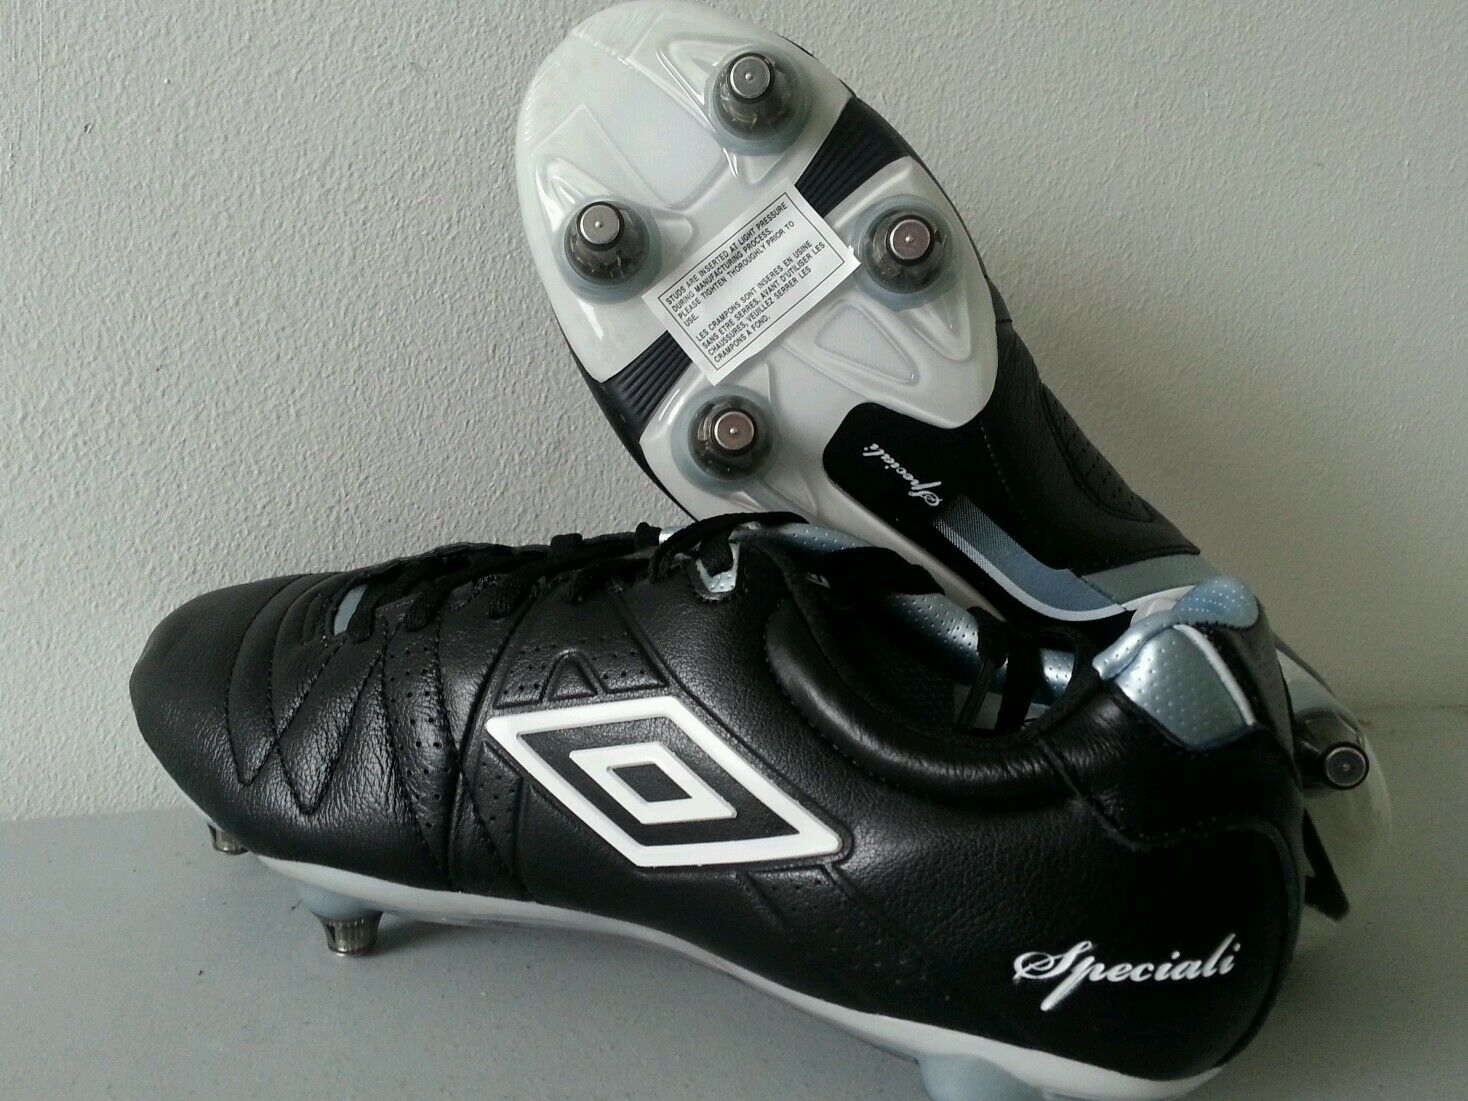 Speciali Pro 3 Football Boots shoes SG leather Kanga Touch 6.5 7 80509UCTT  T167